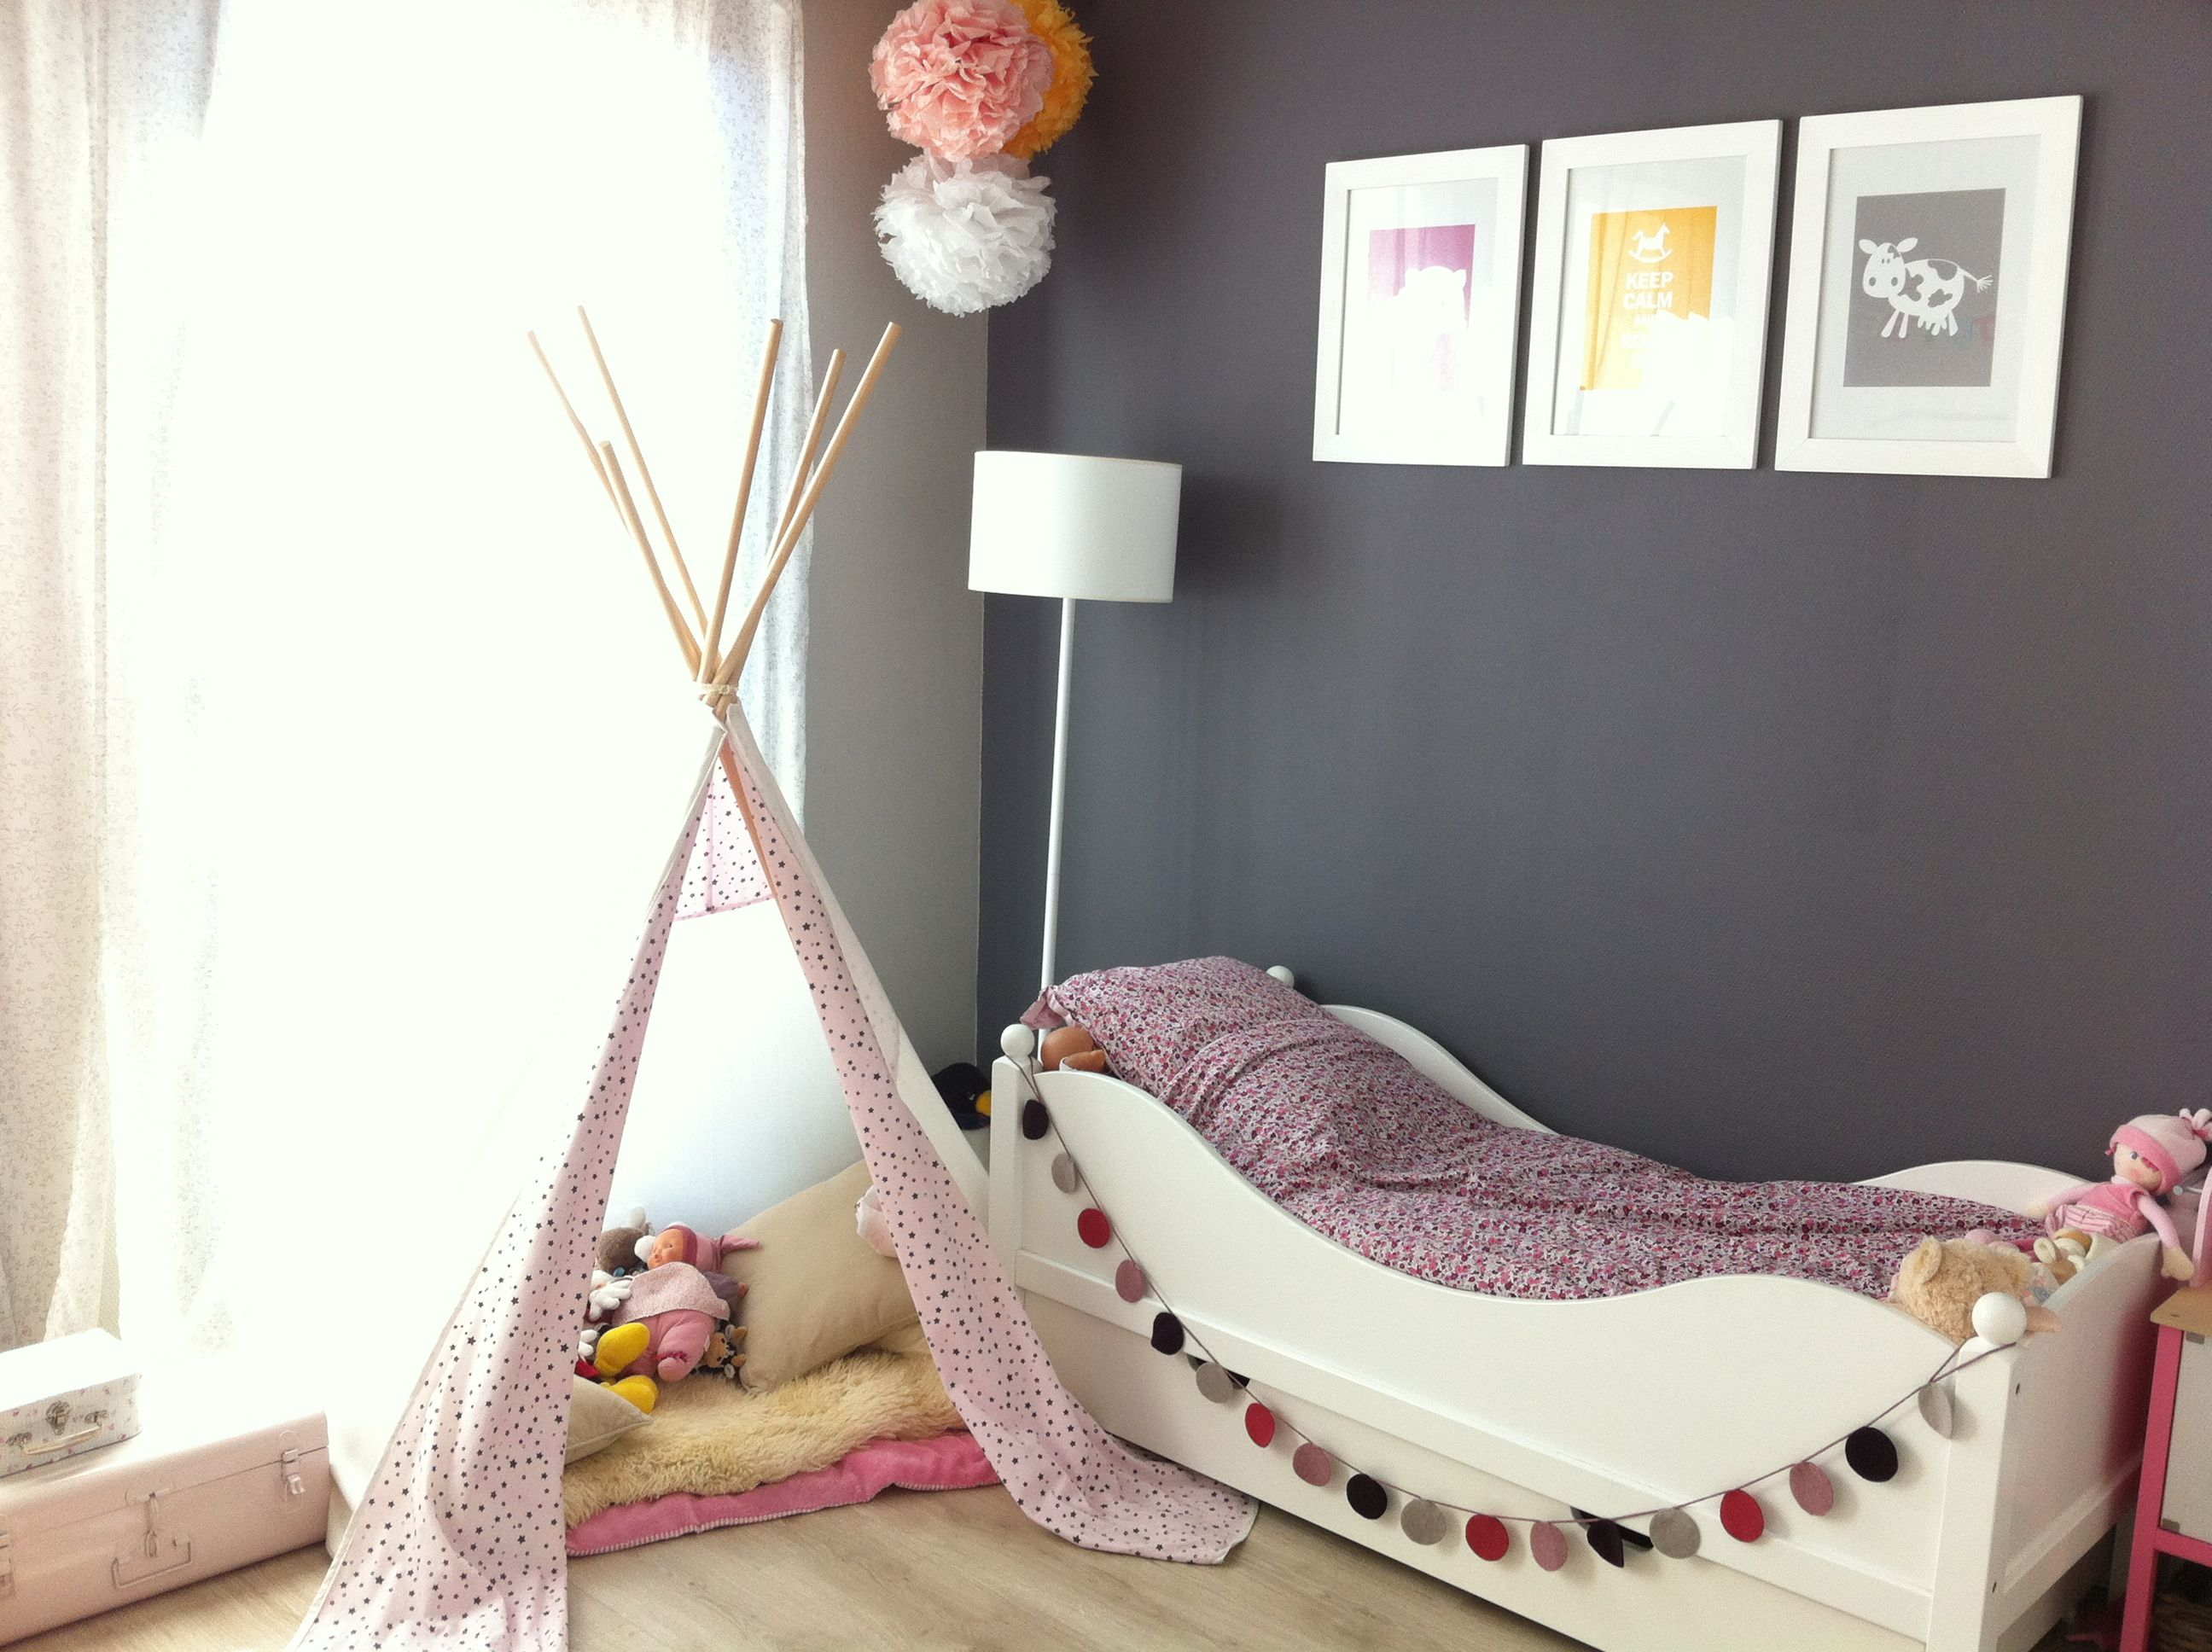 tipi tuto ikea chambre enfant fille chambre enfant pinterest ikea chambre enfant ikea et tuto. Black Bedroom Furniture Sets. Home Design Ideas